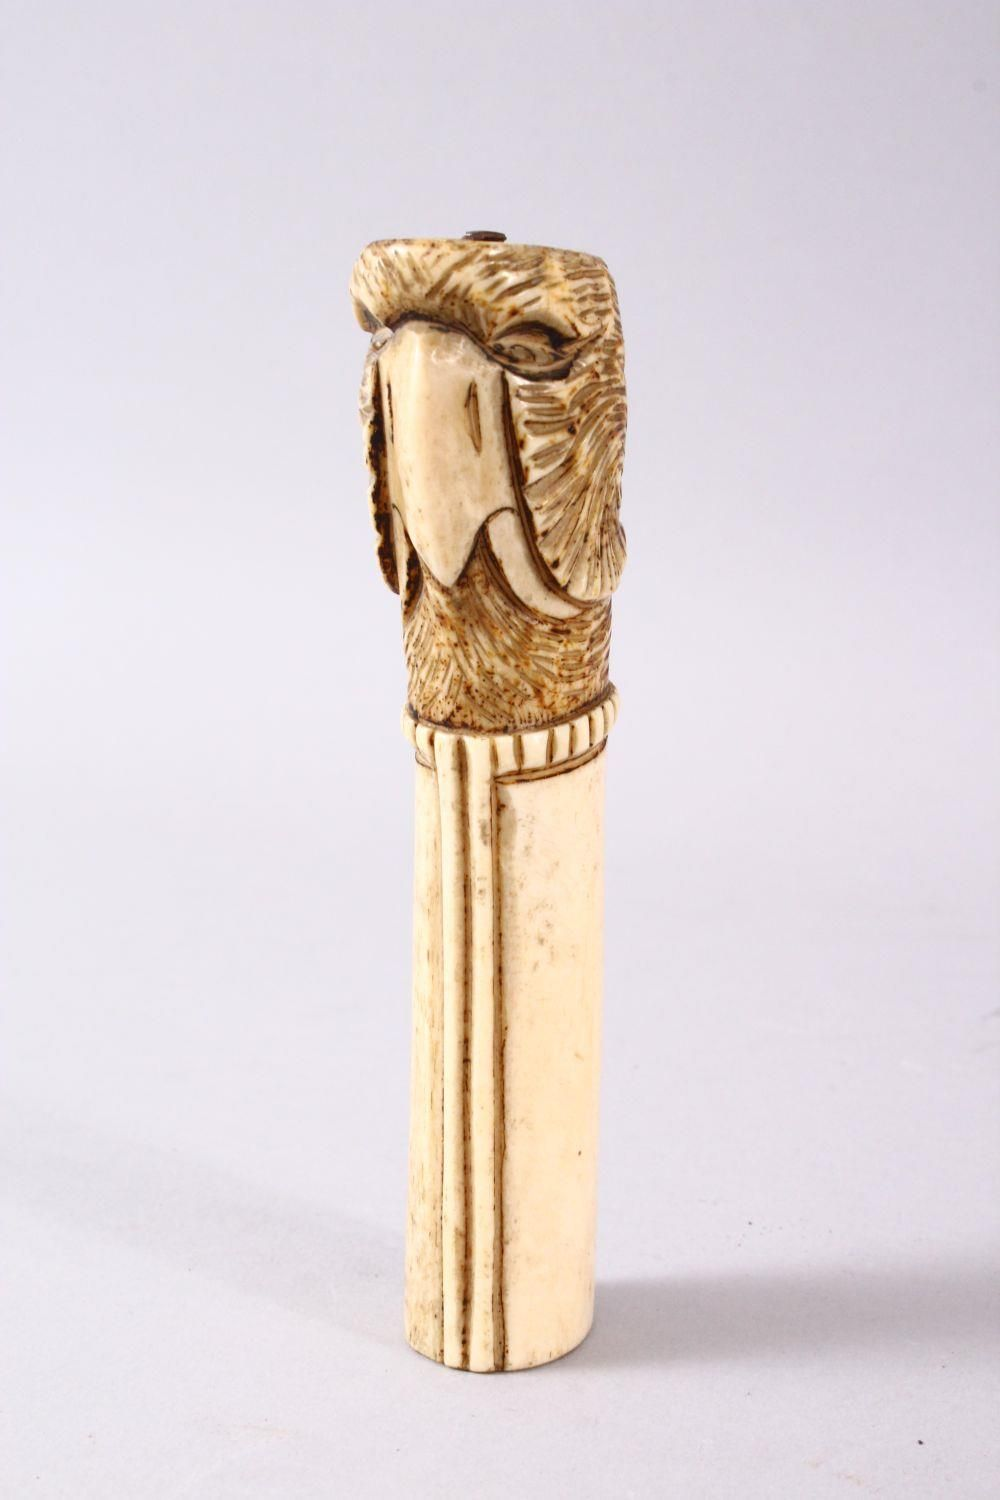 A 19TH CENTURY INDIAN MUGHAL CARVED IVORY BIRD FORMED DAGGER HANDLE, 13cm. - Image 2 of 6